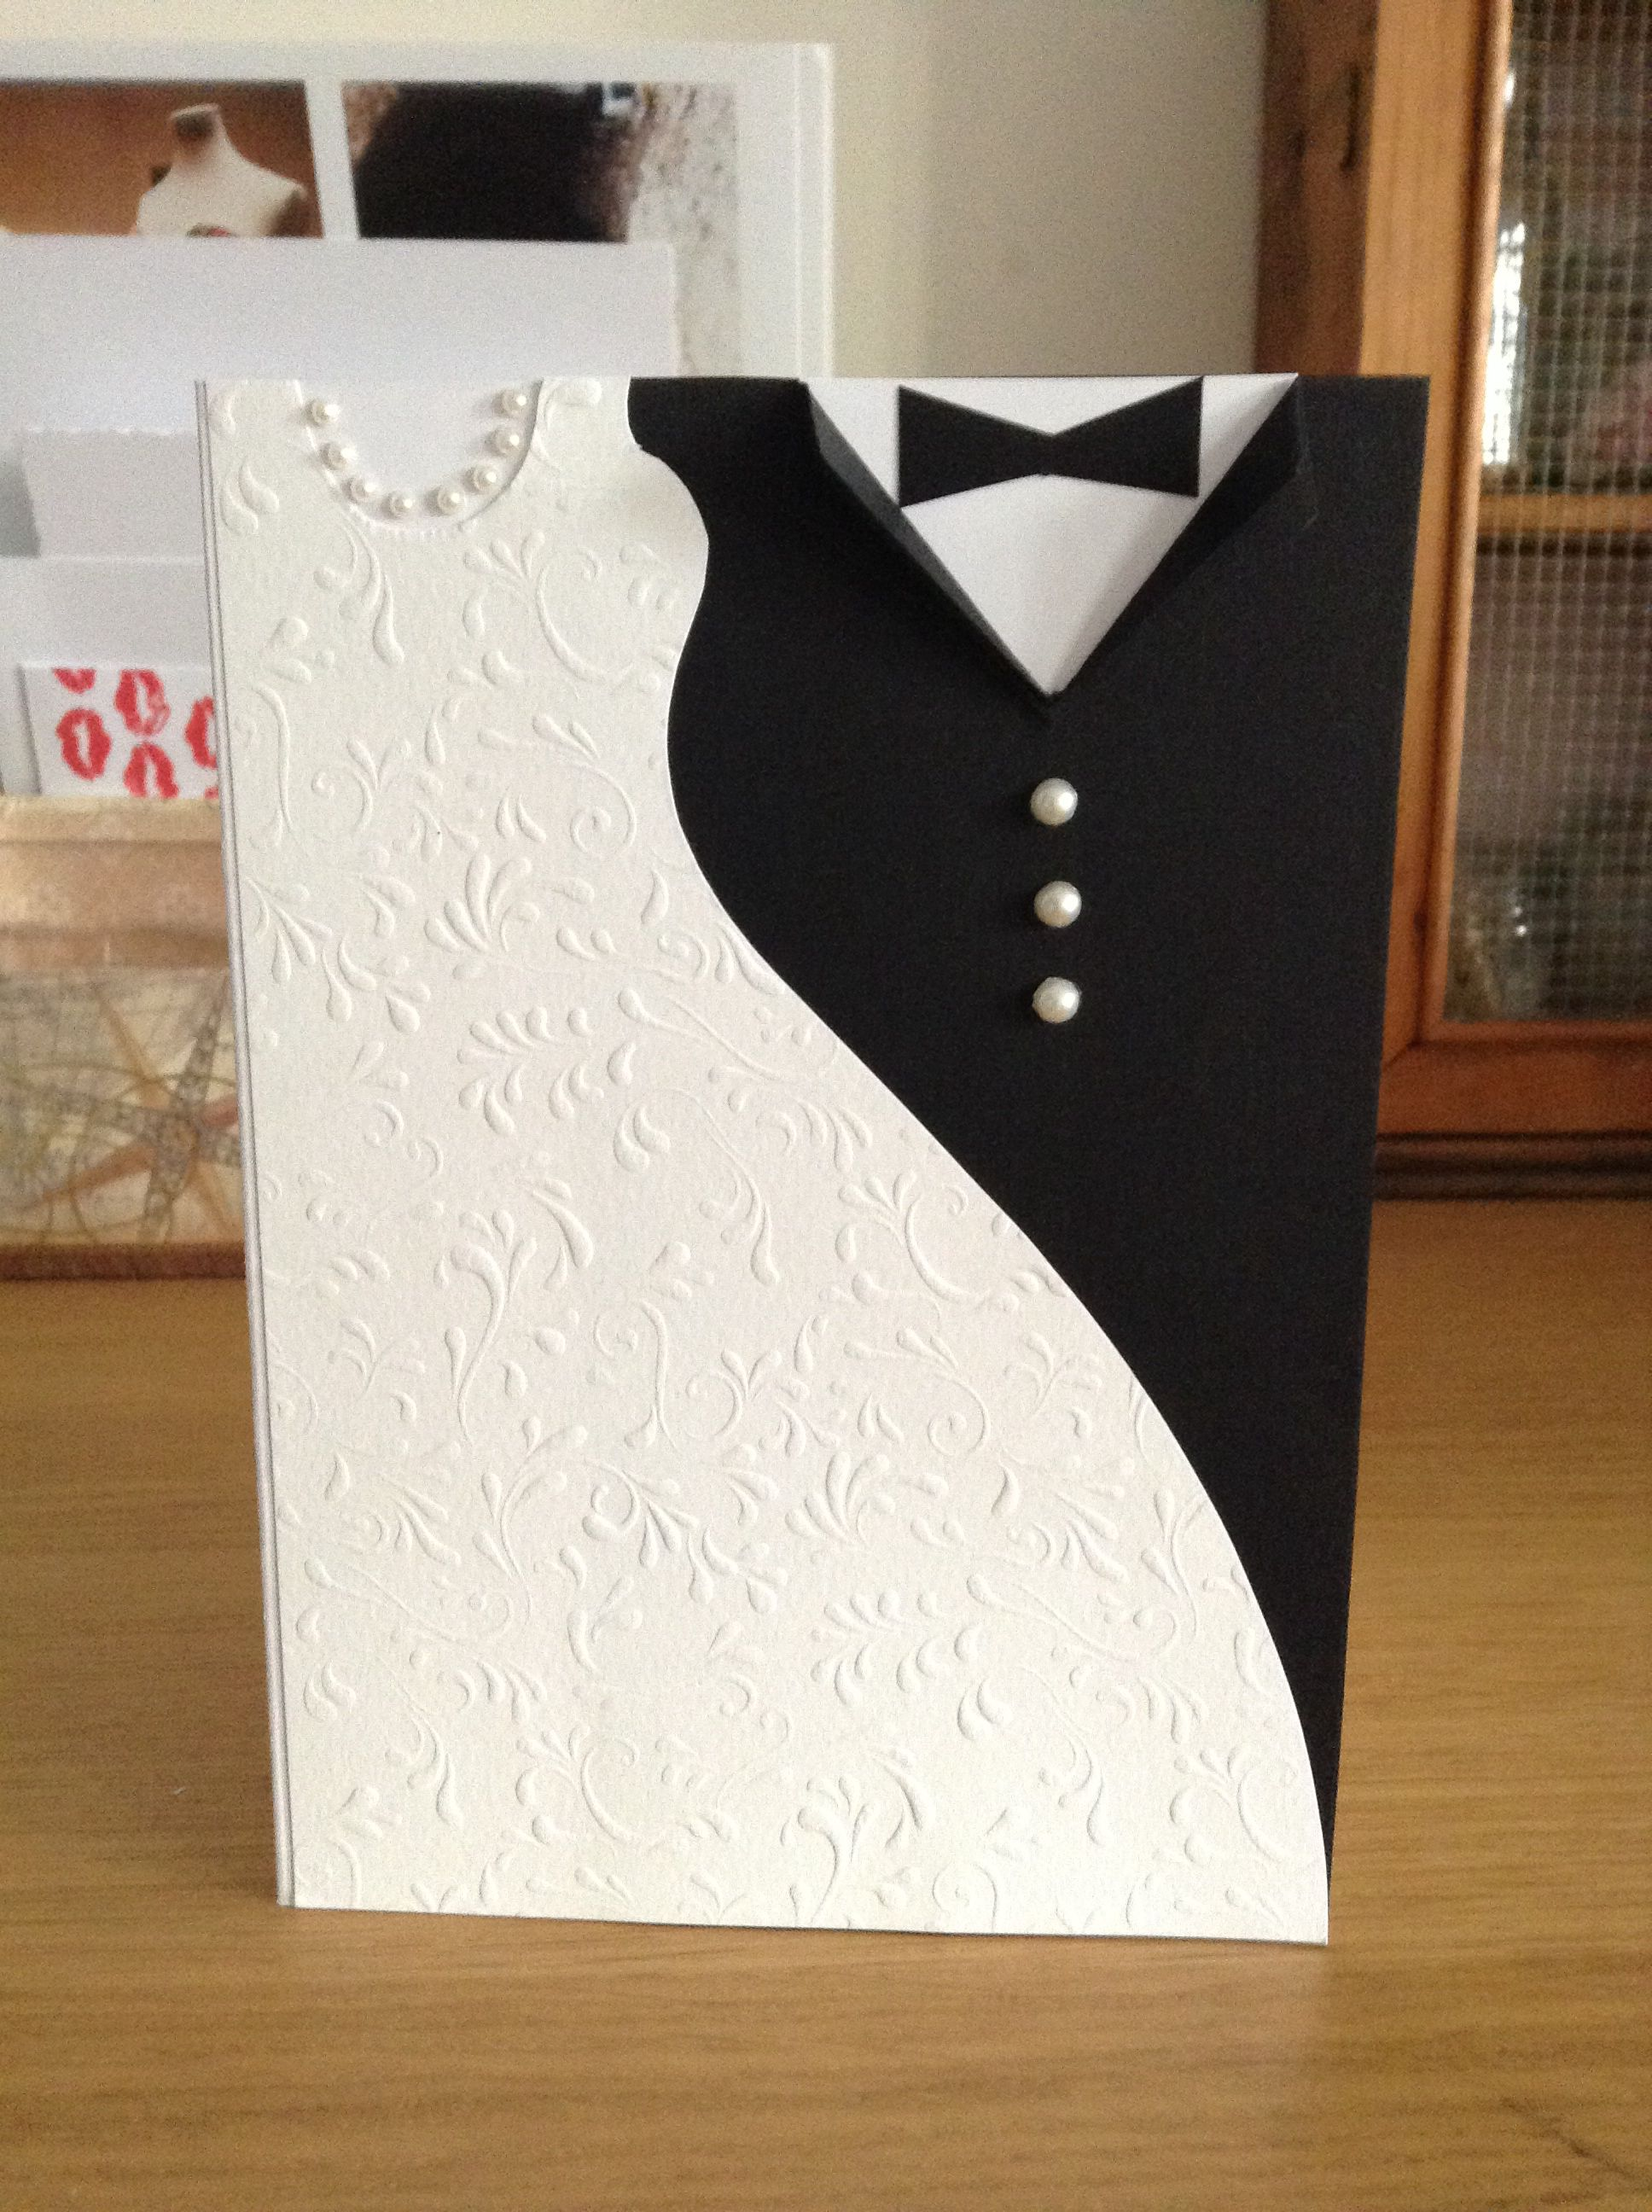 Ordinary Card Making Ideas For Weddings Part - 6: Wedding Cards- Handmade Cards- Diy Cards